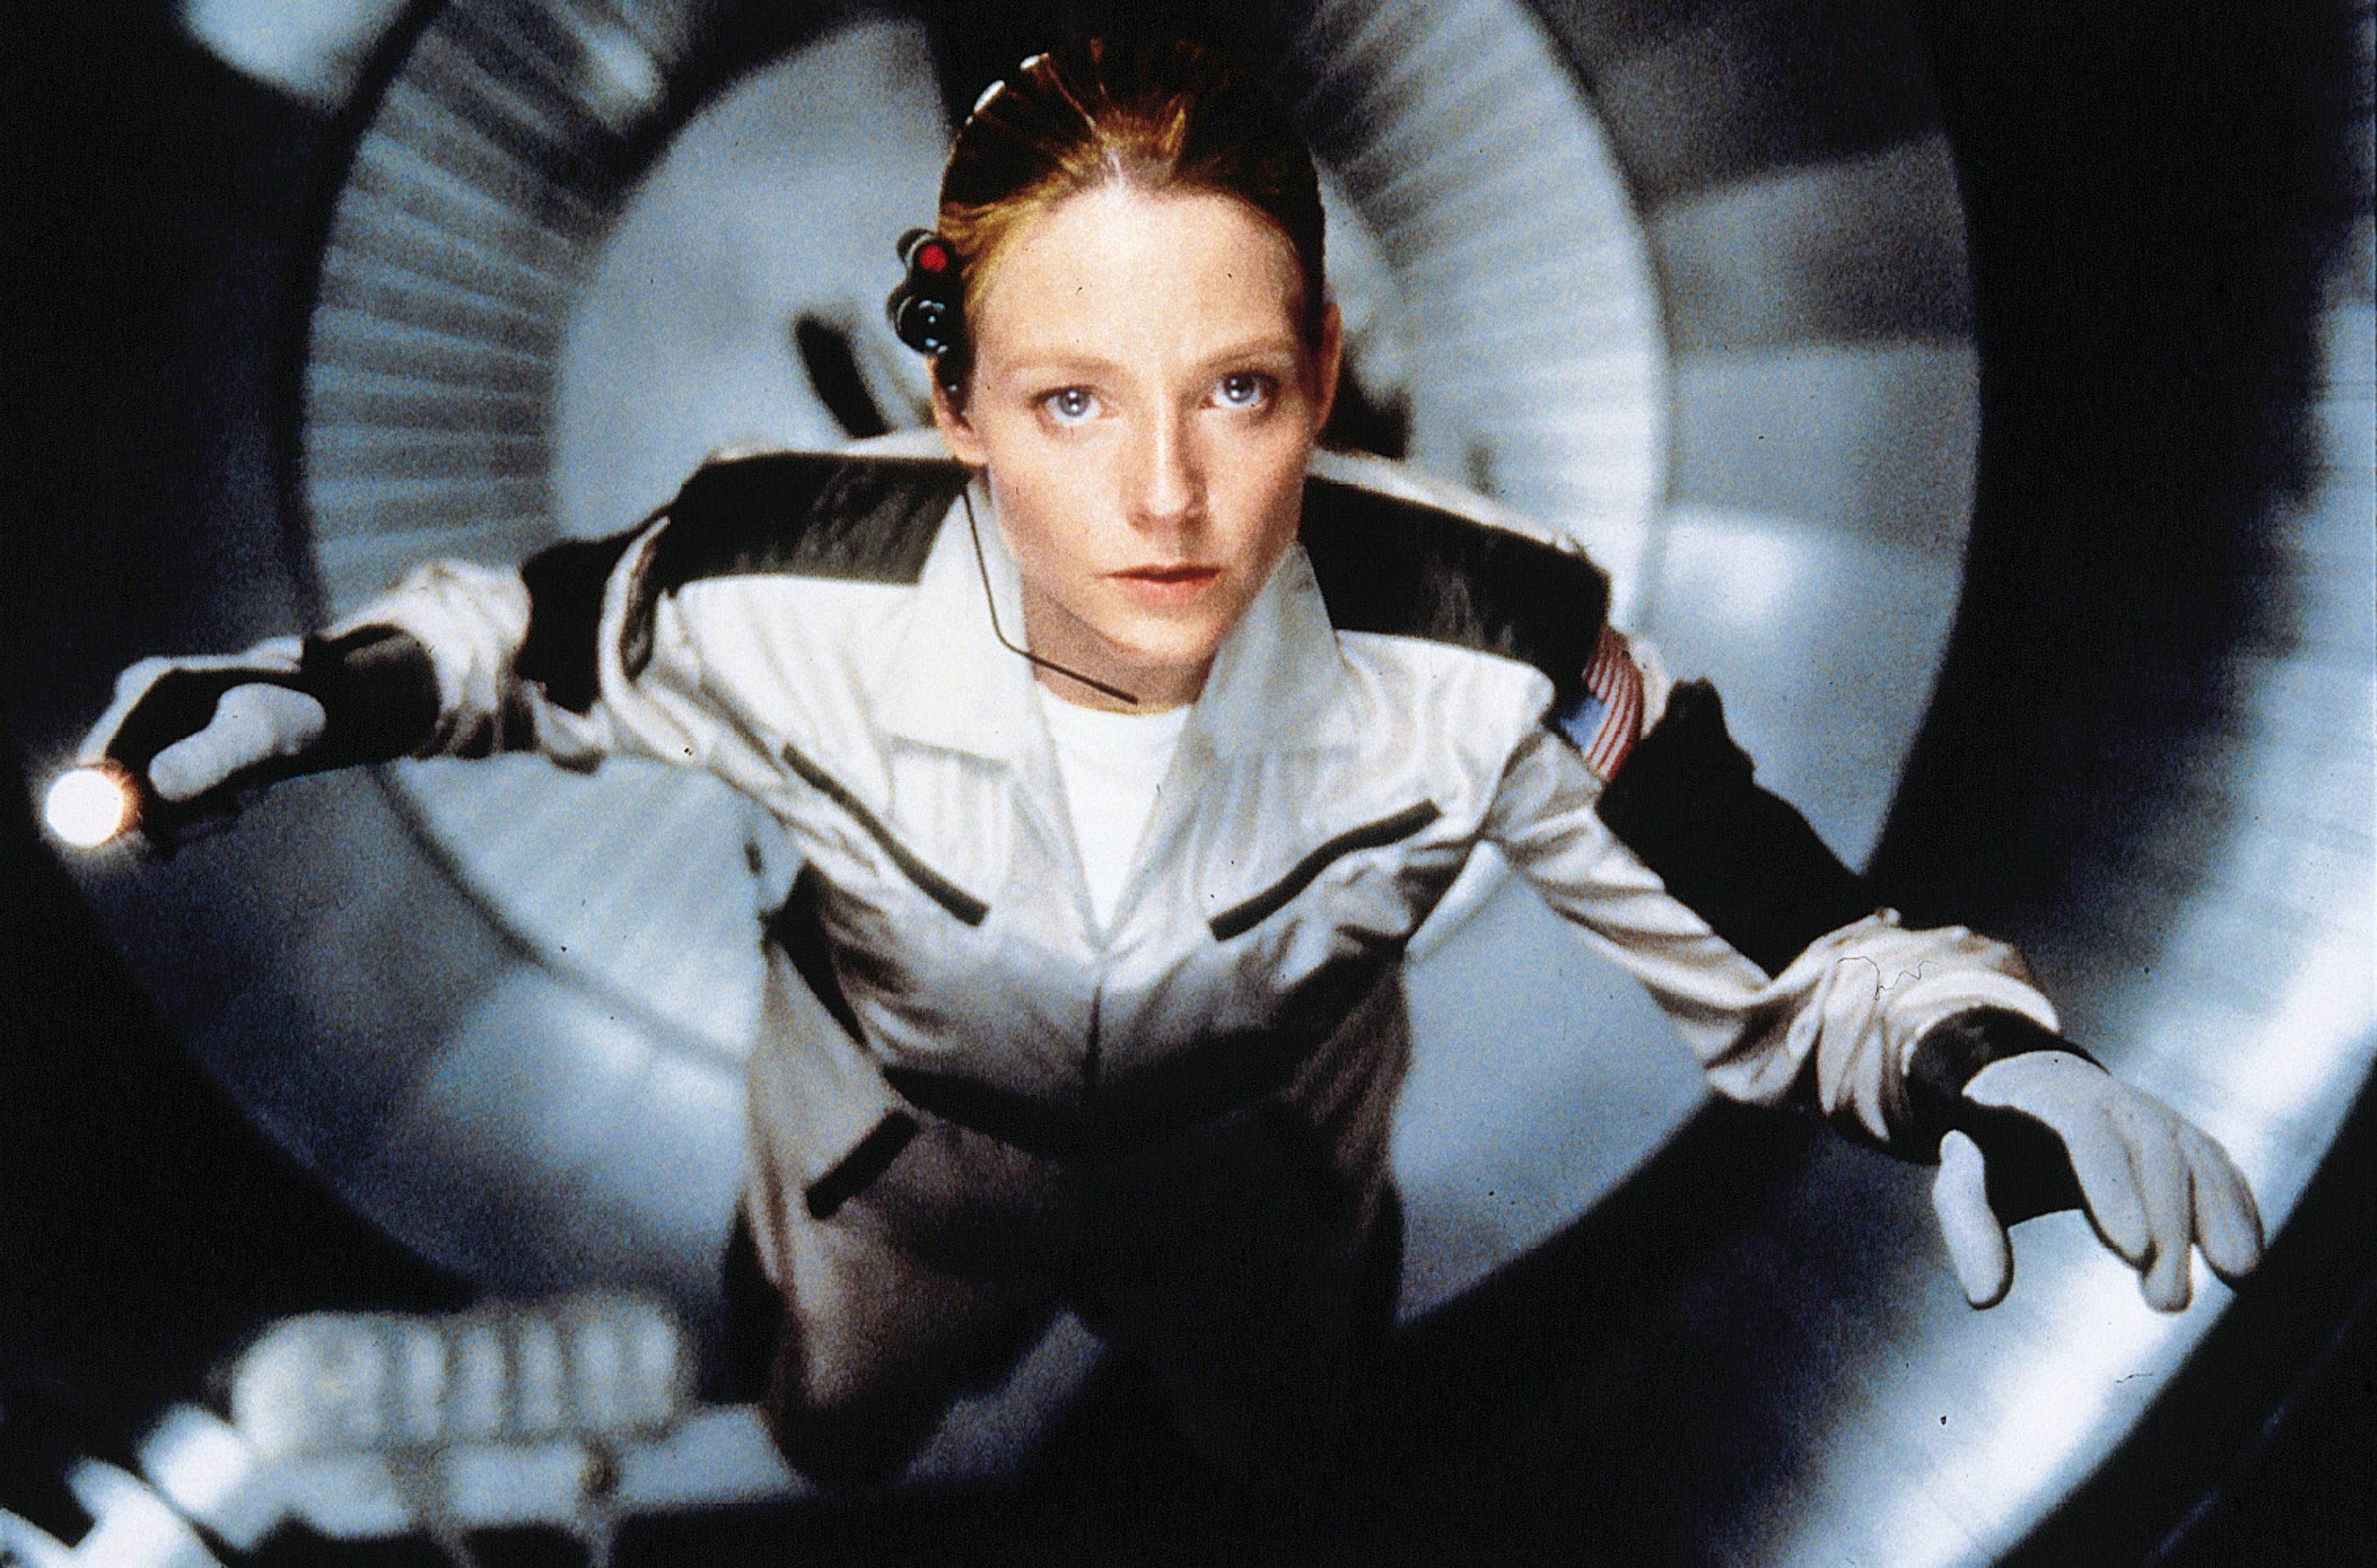 Contact Movie Still 1997 Jodie Foster As Dr Eleanor Ellie Arroway Contact Movie Jodie Foster Great Sci Fi Movies